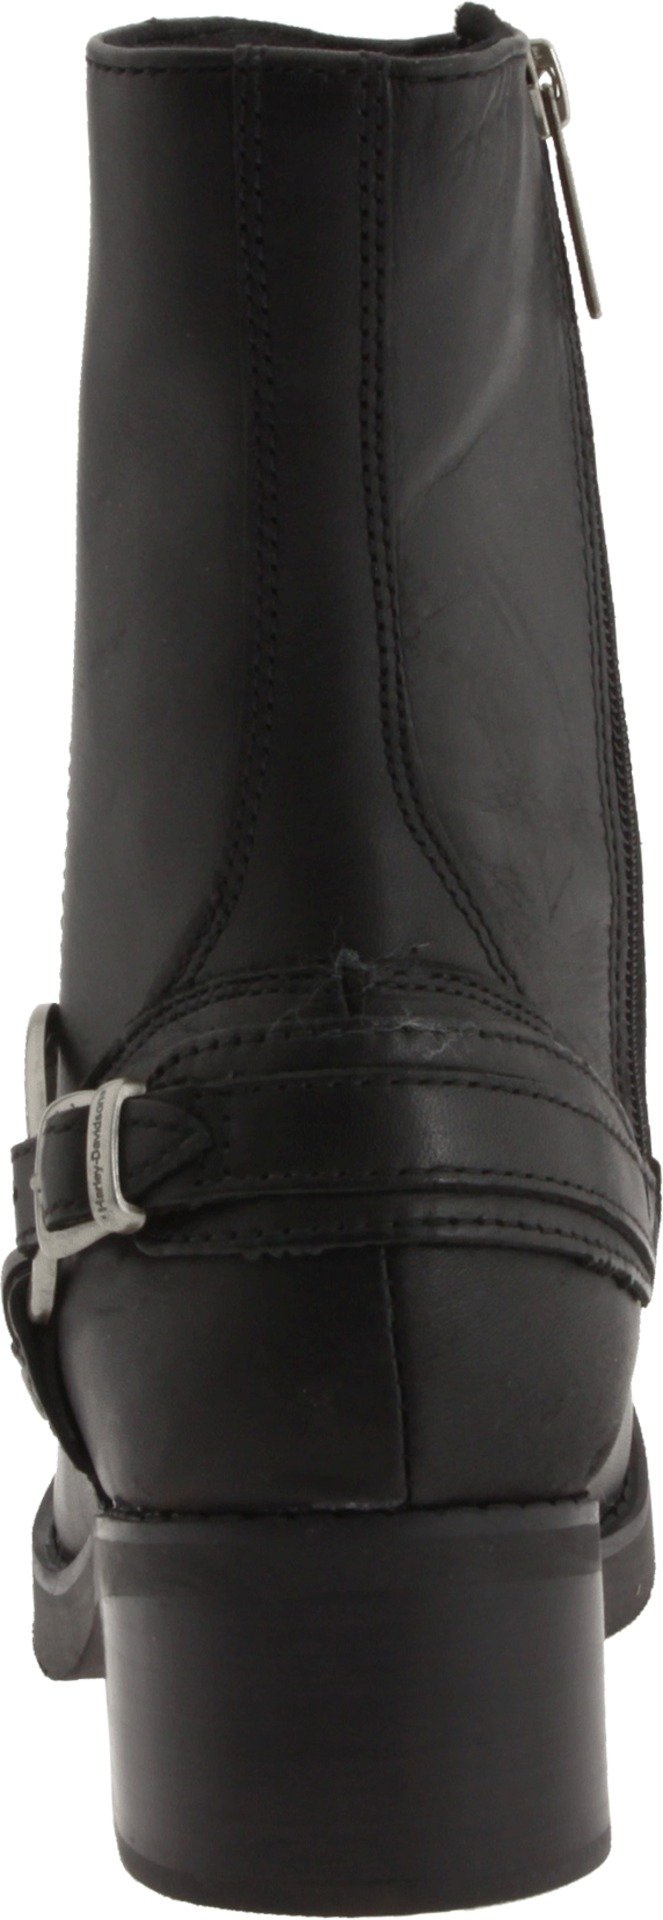 Harley-Davidson Women's Christa Motorcycle Harness Boot, Black, 11 M US by Harley-Davidson (Image #2)